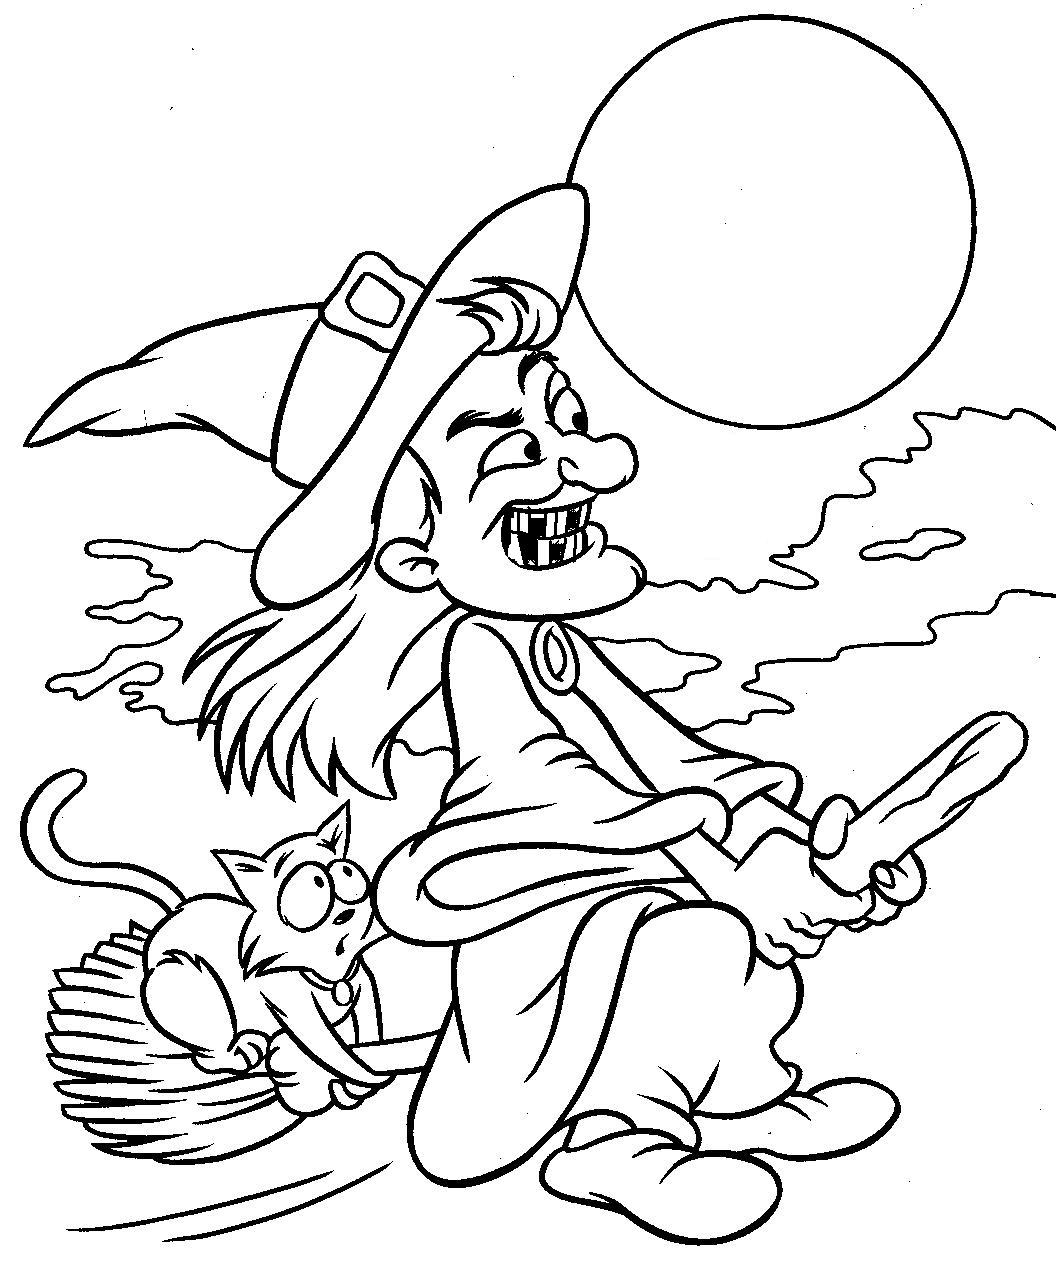 Hallween Coloring Pages